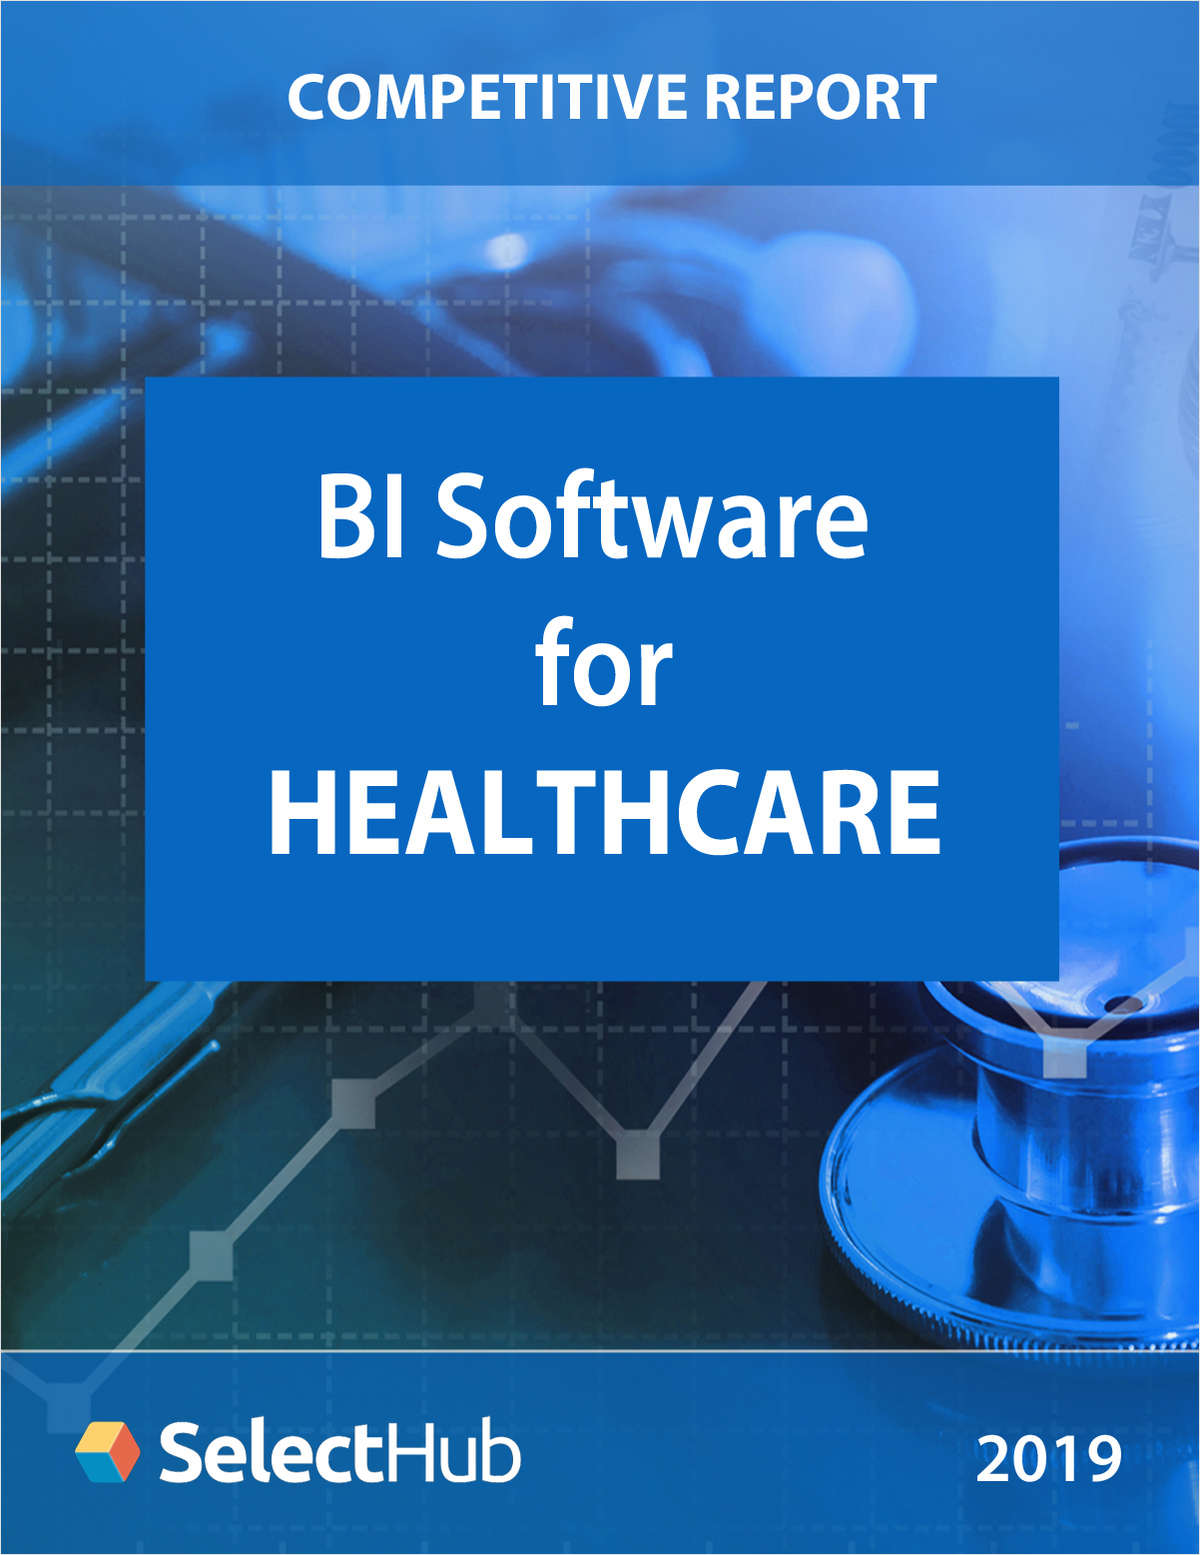 Top Healthcare Business Intelligence Software―Competitive Report